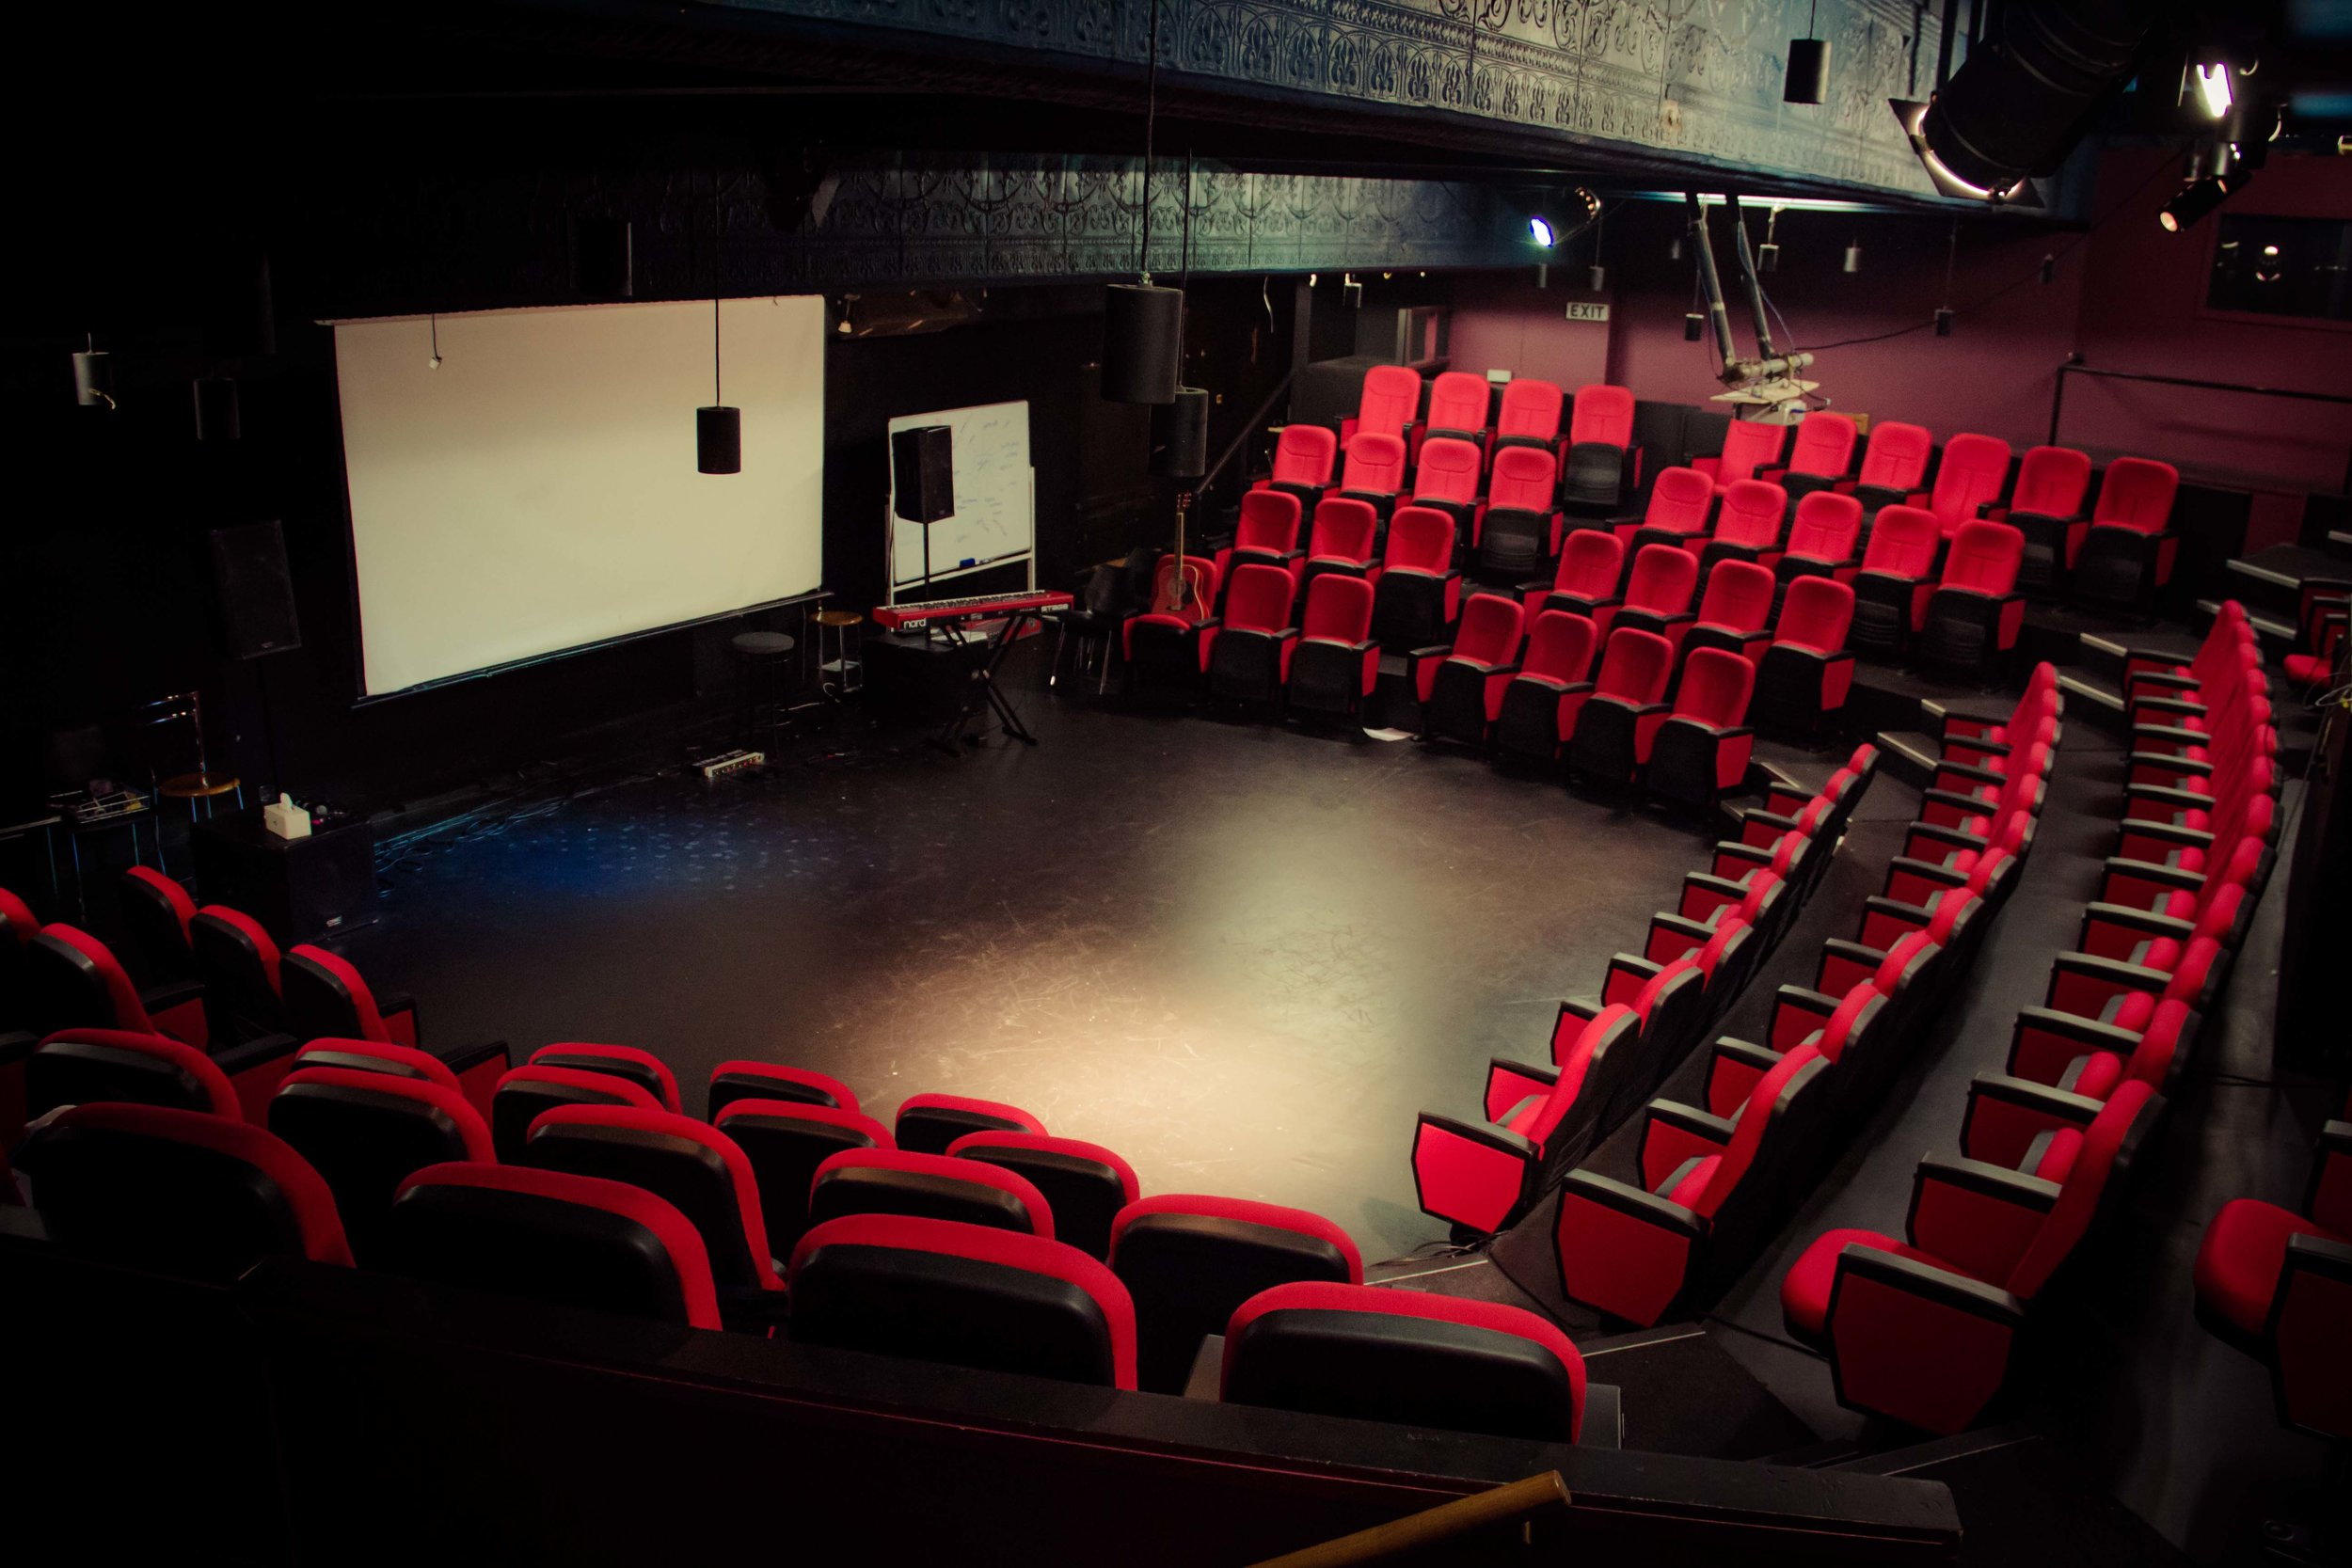 Upper Theatre - This is a somewhat smaller theatre with 107 comfortable seats and also includes a sound system and basic lighting. It is ideal for smaller acoustic sets, seminars, or teaching sessions.